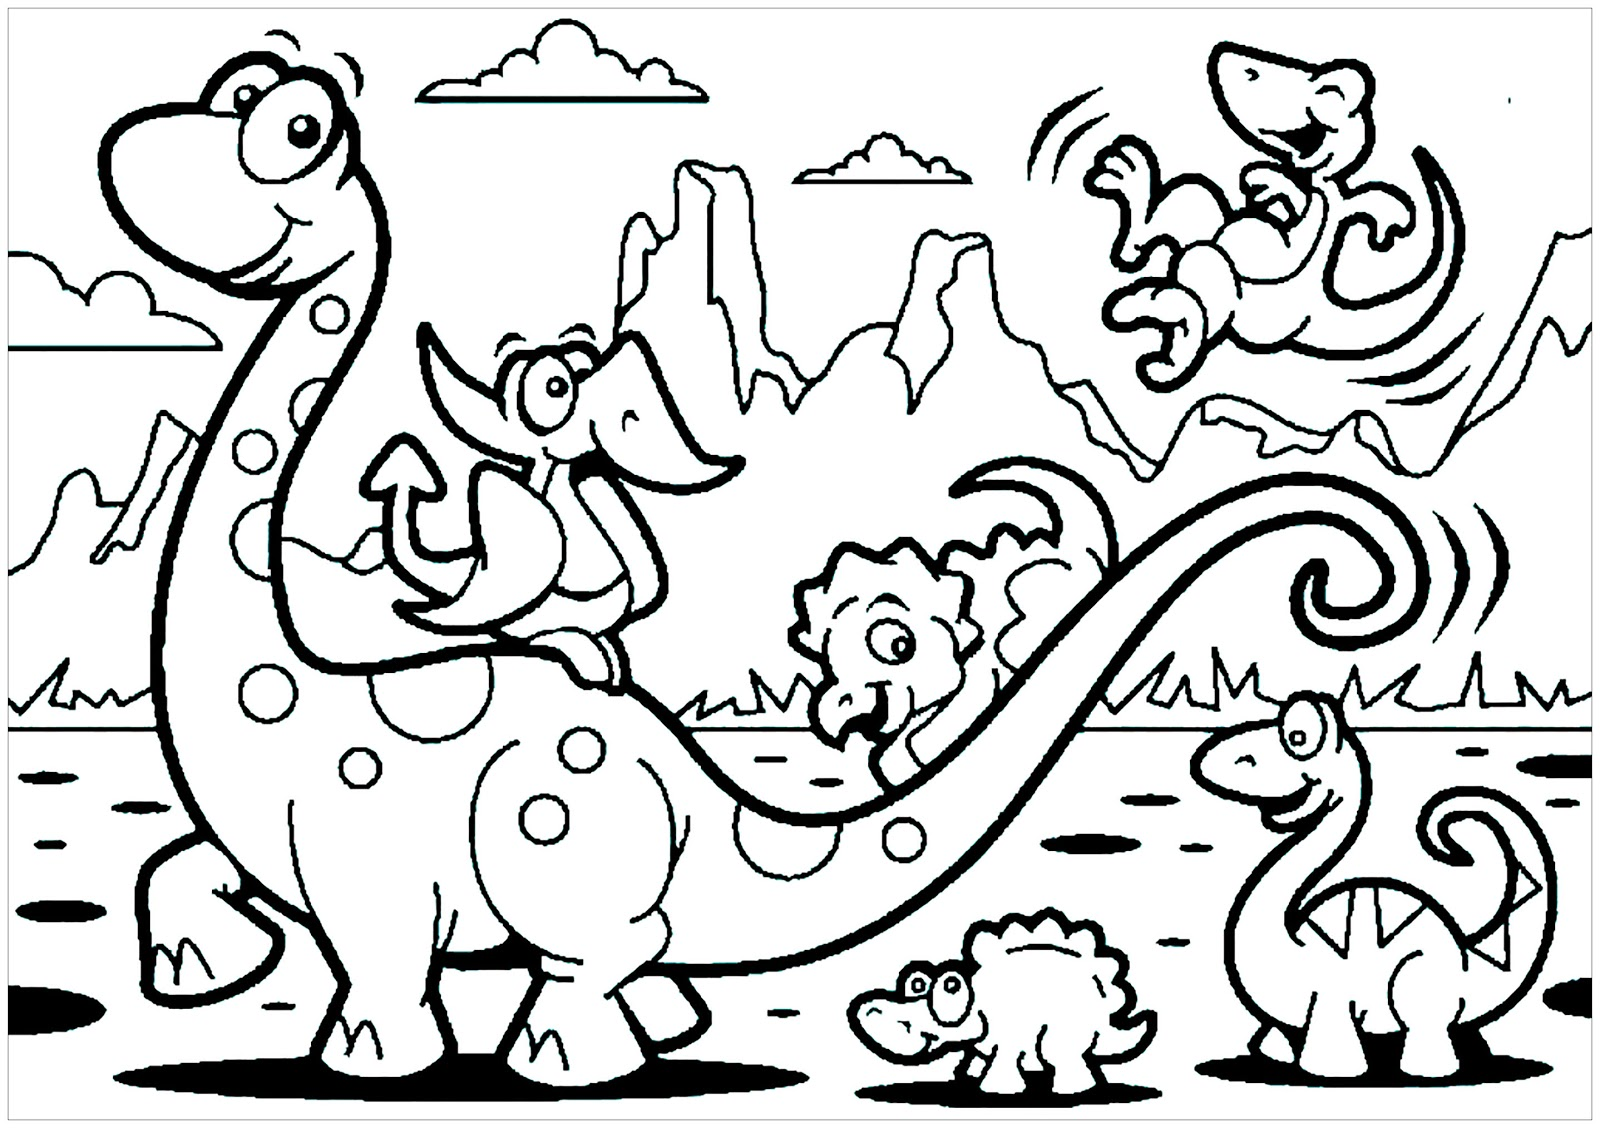 Dinosaurs coloring pages 52